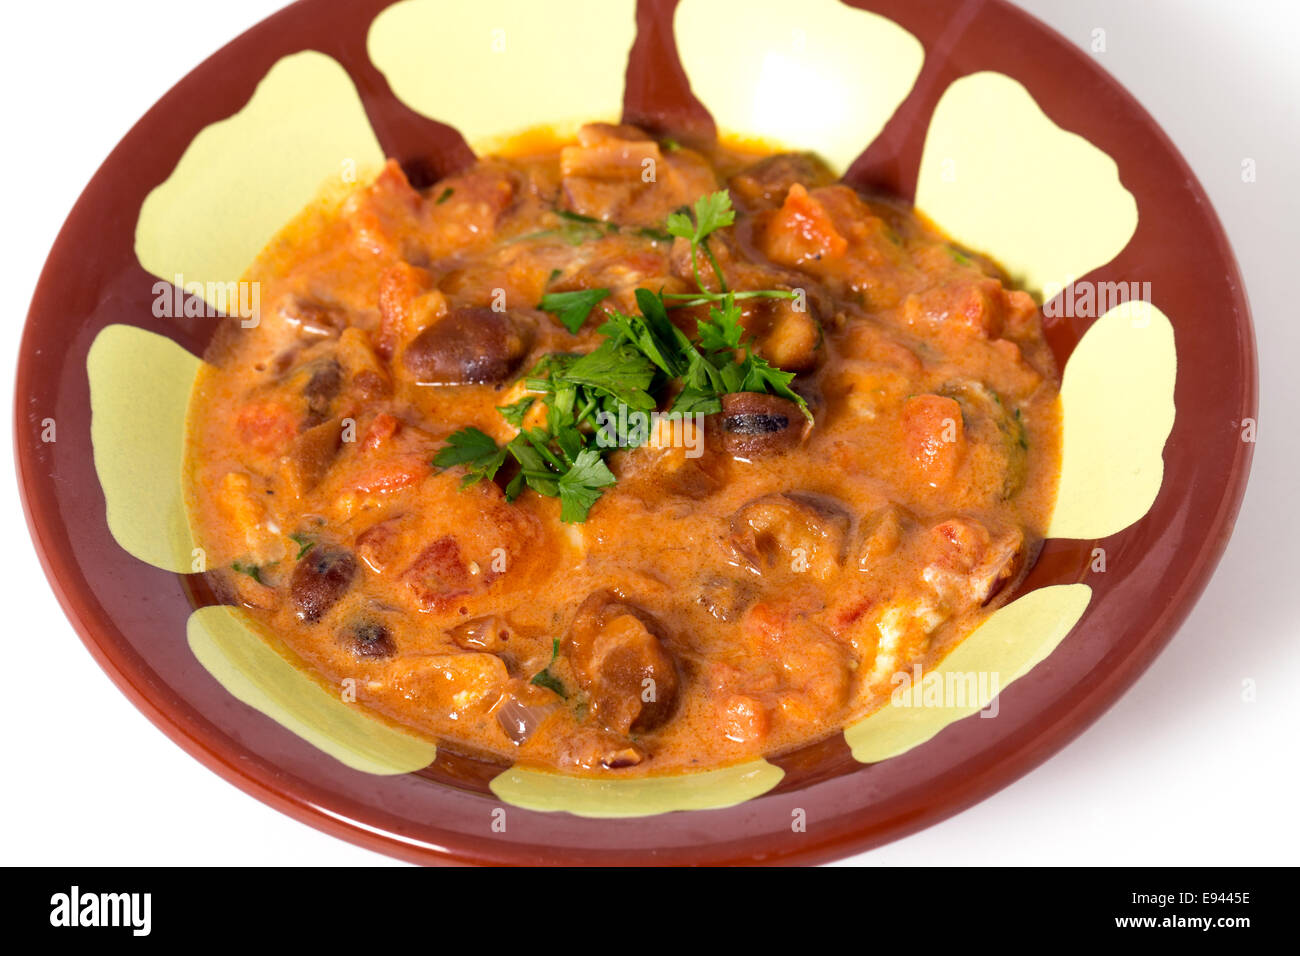 Egyptian foul medammes, a staple of the country's diet, made from fava (broad) beans, tomato, onion, garlic - Stock Image